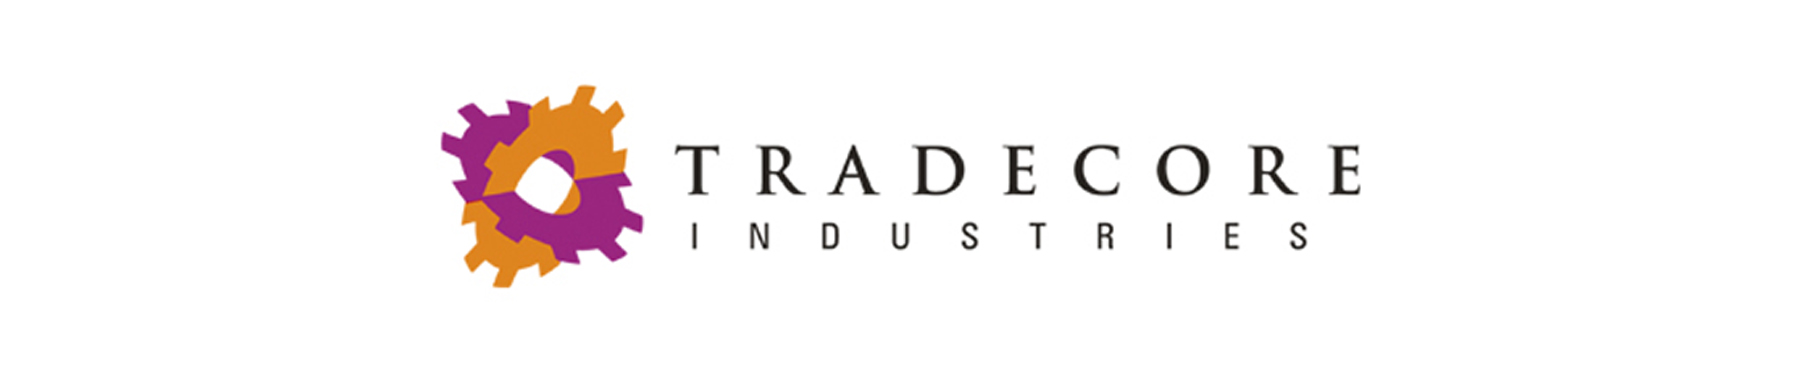 Tradecore banner on white background